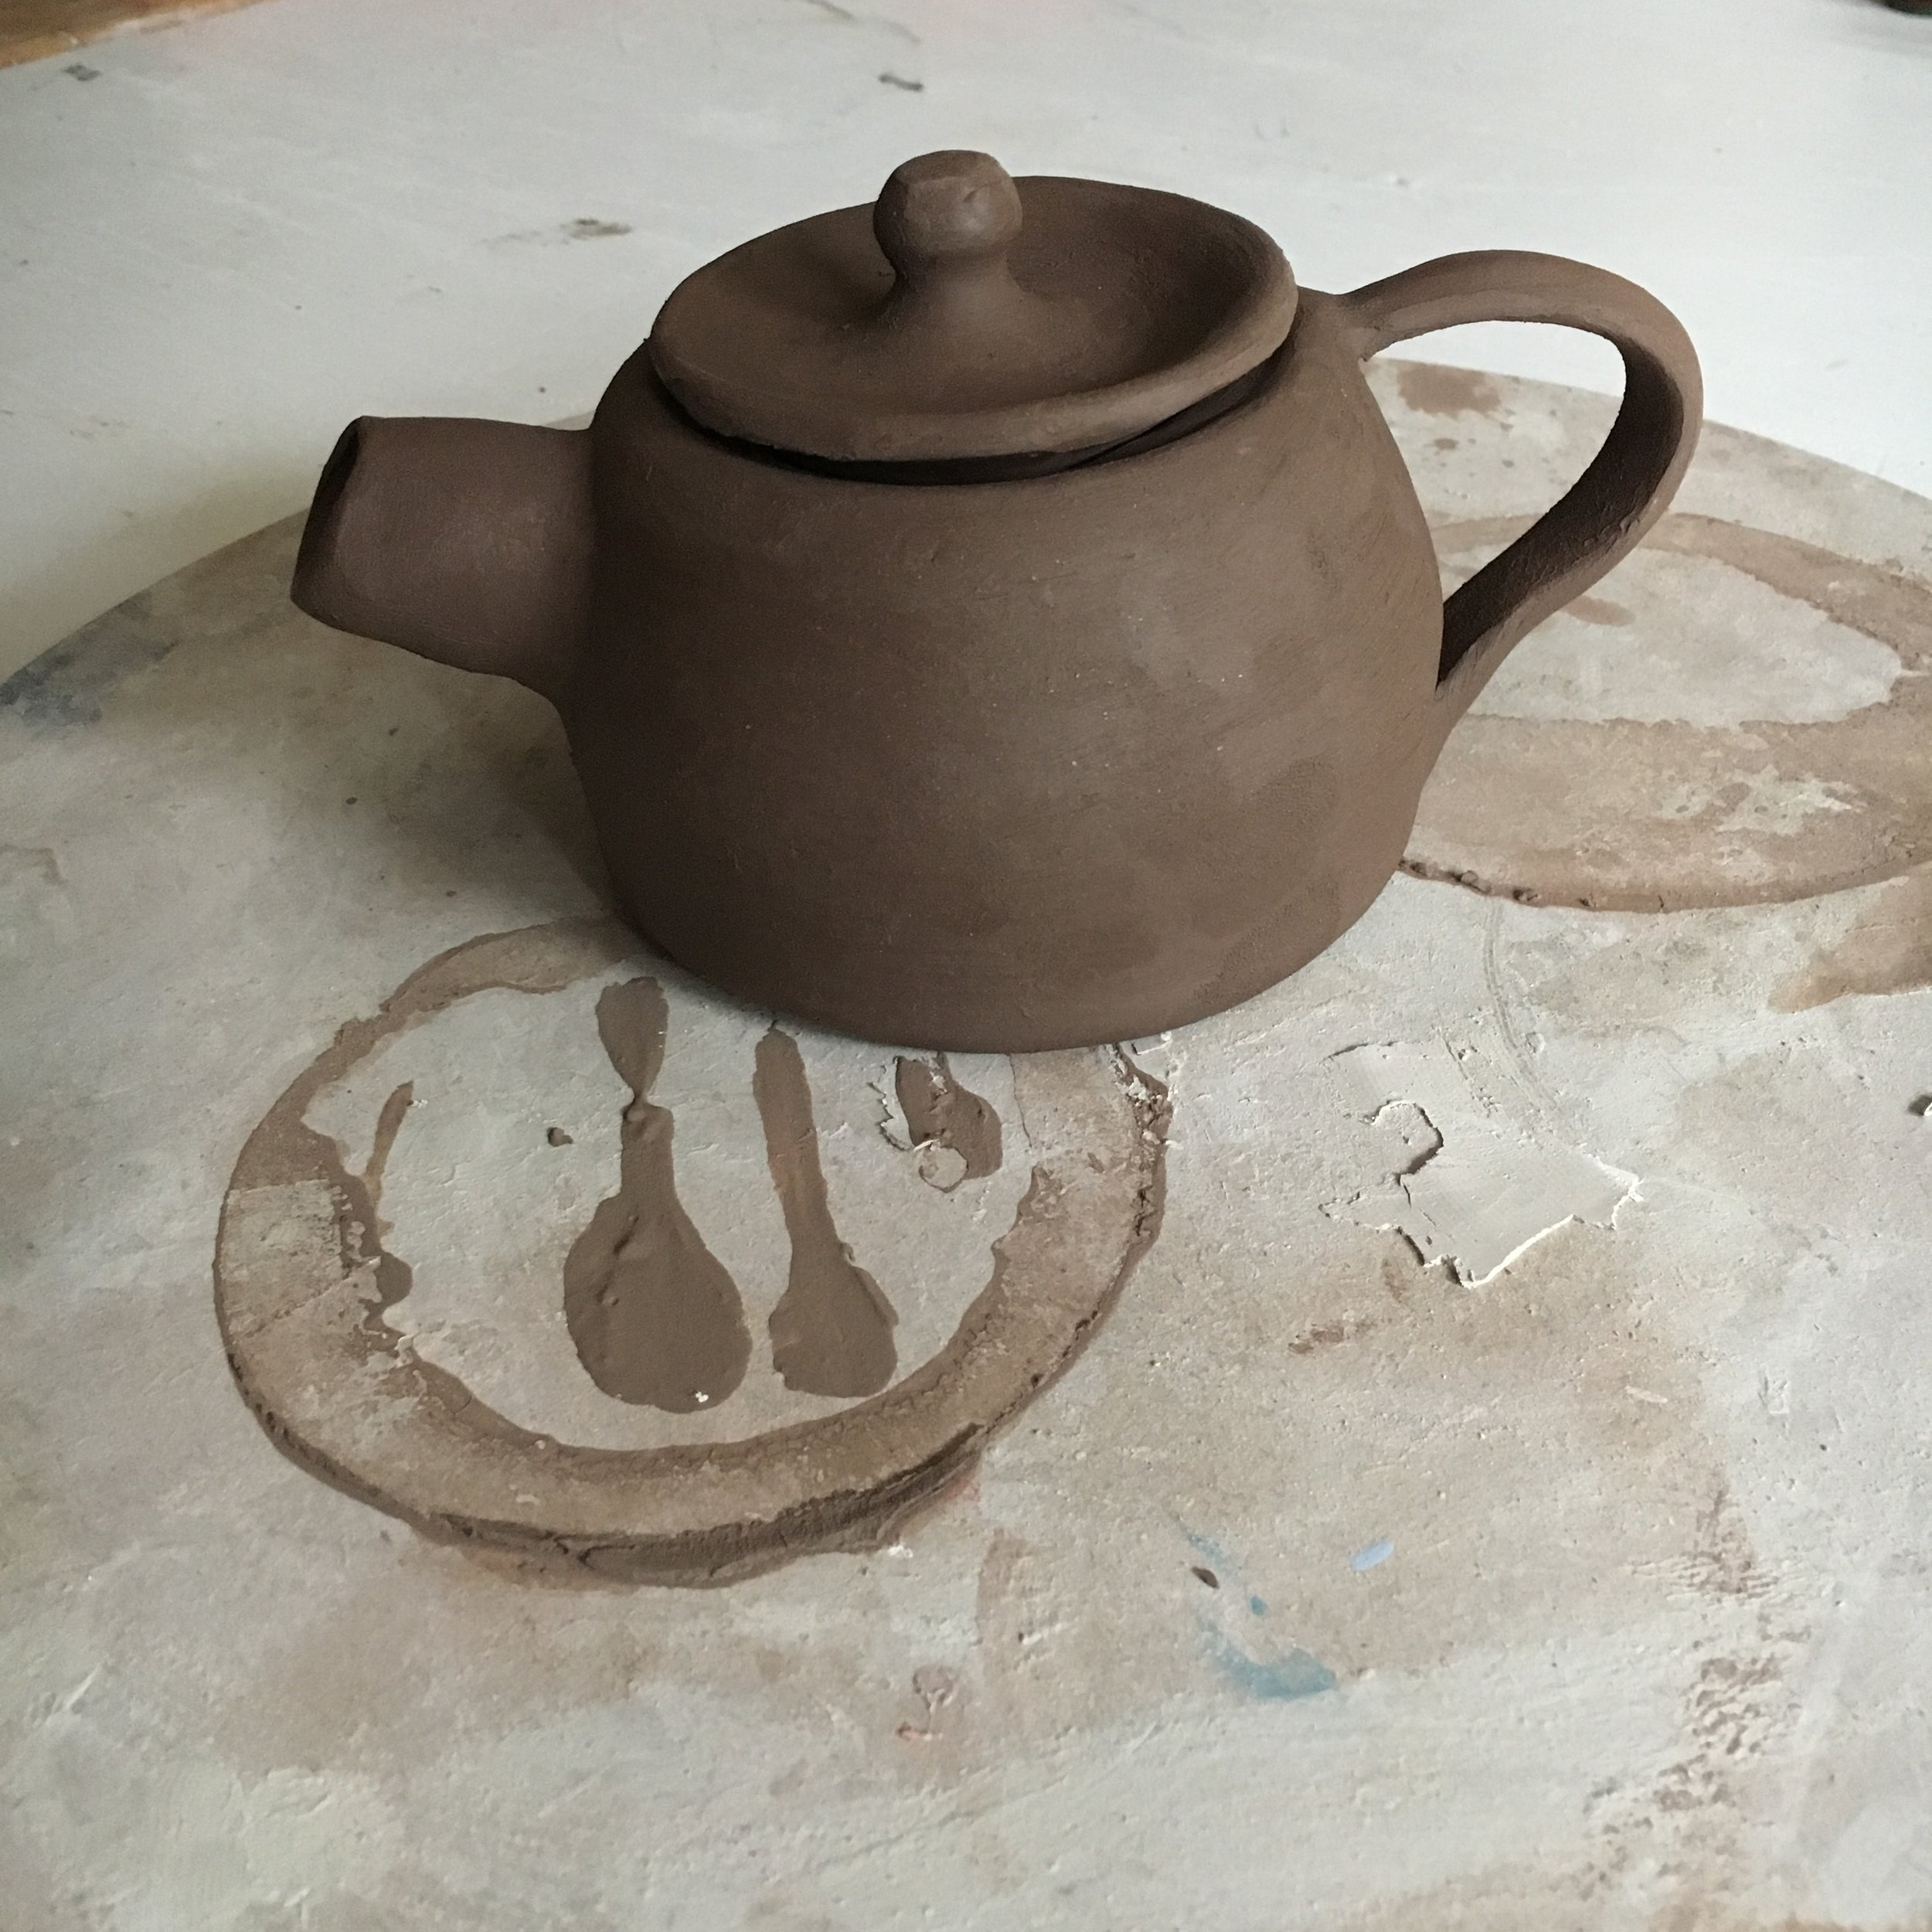 My teapot when it was first made.